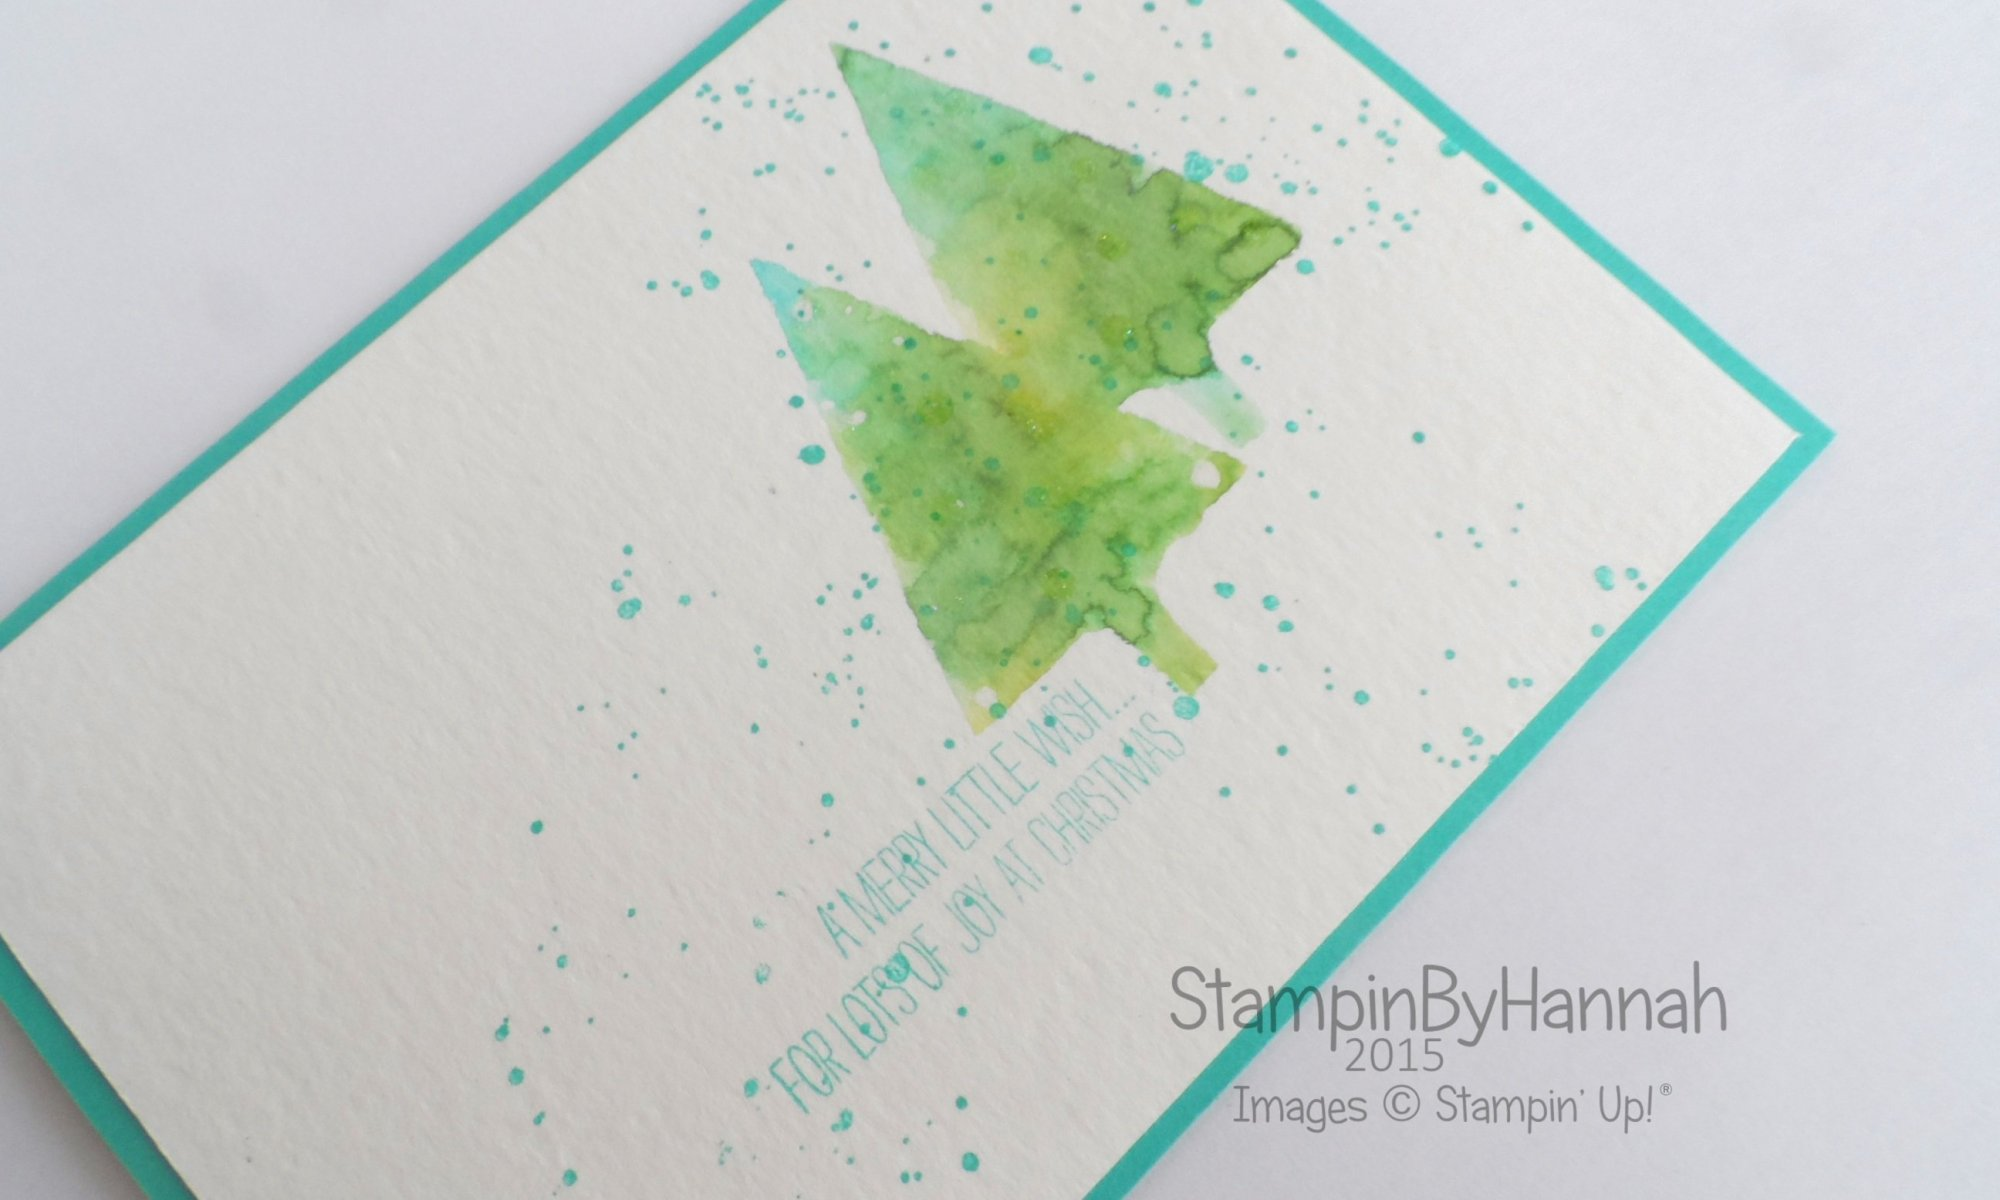 Stampin' Up! UK Festival of Trees Watercolour